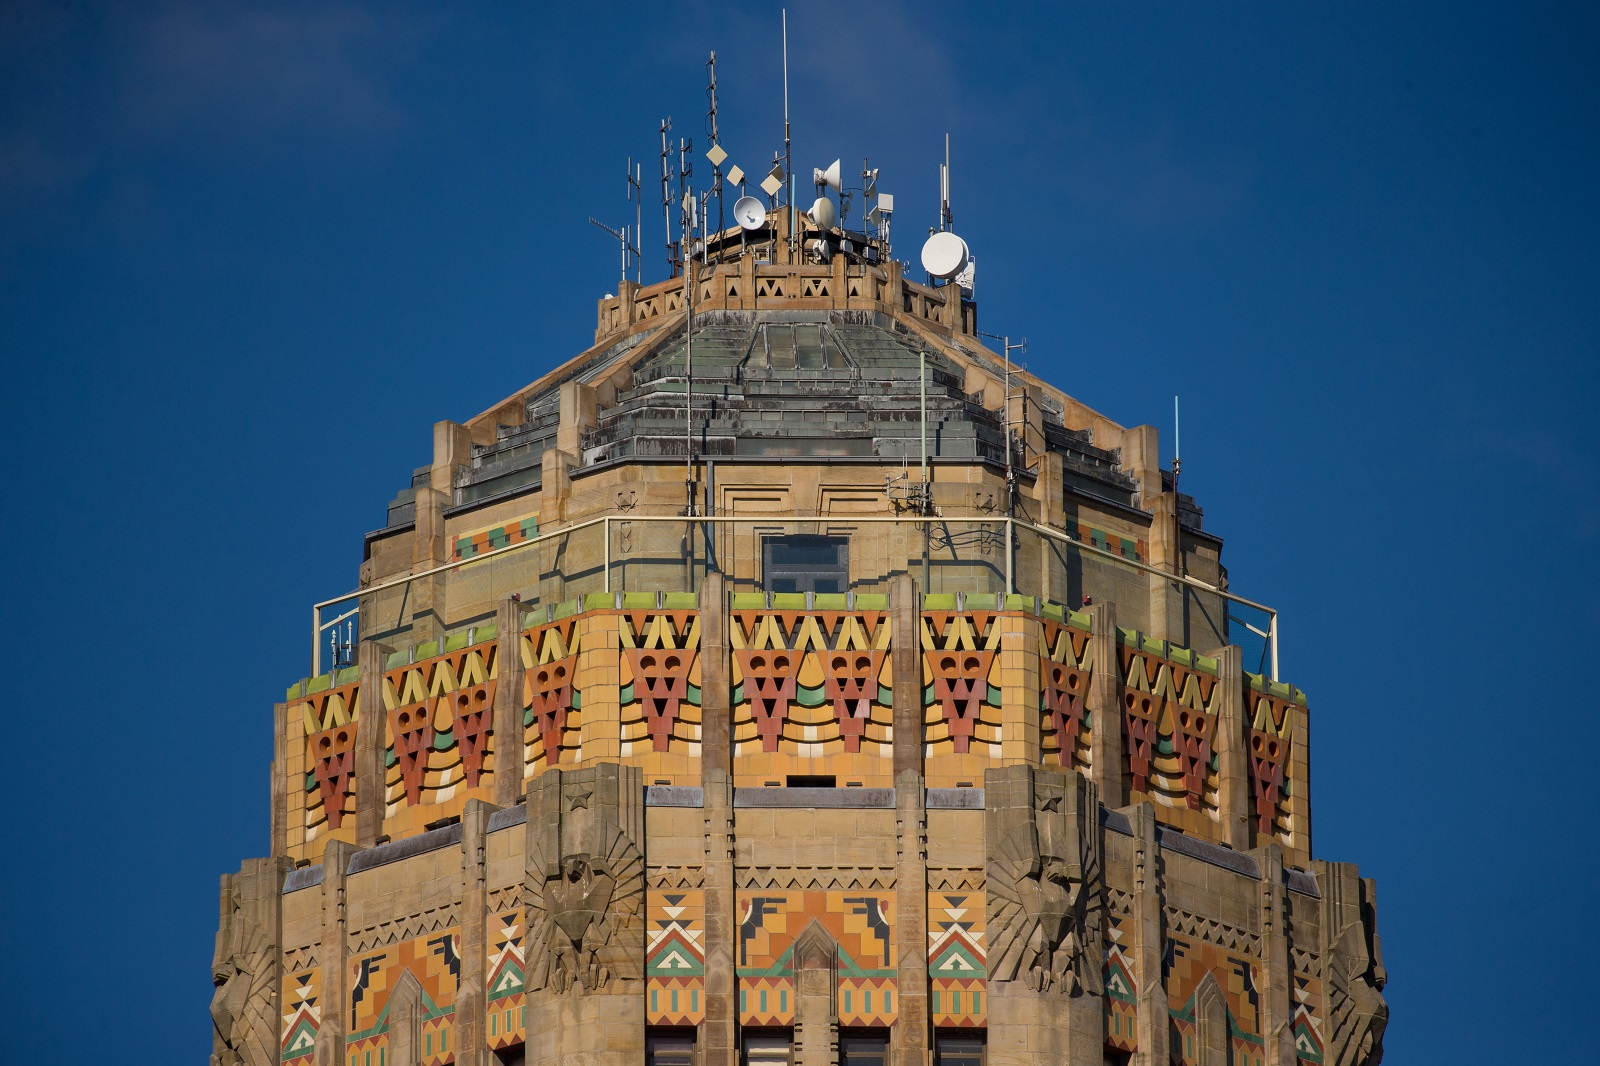 Art deco style architecture - The Intricate Terra Cotta Tile Pattern On The Dome Of Buffalo City Hall Represents The Art